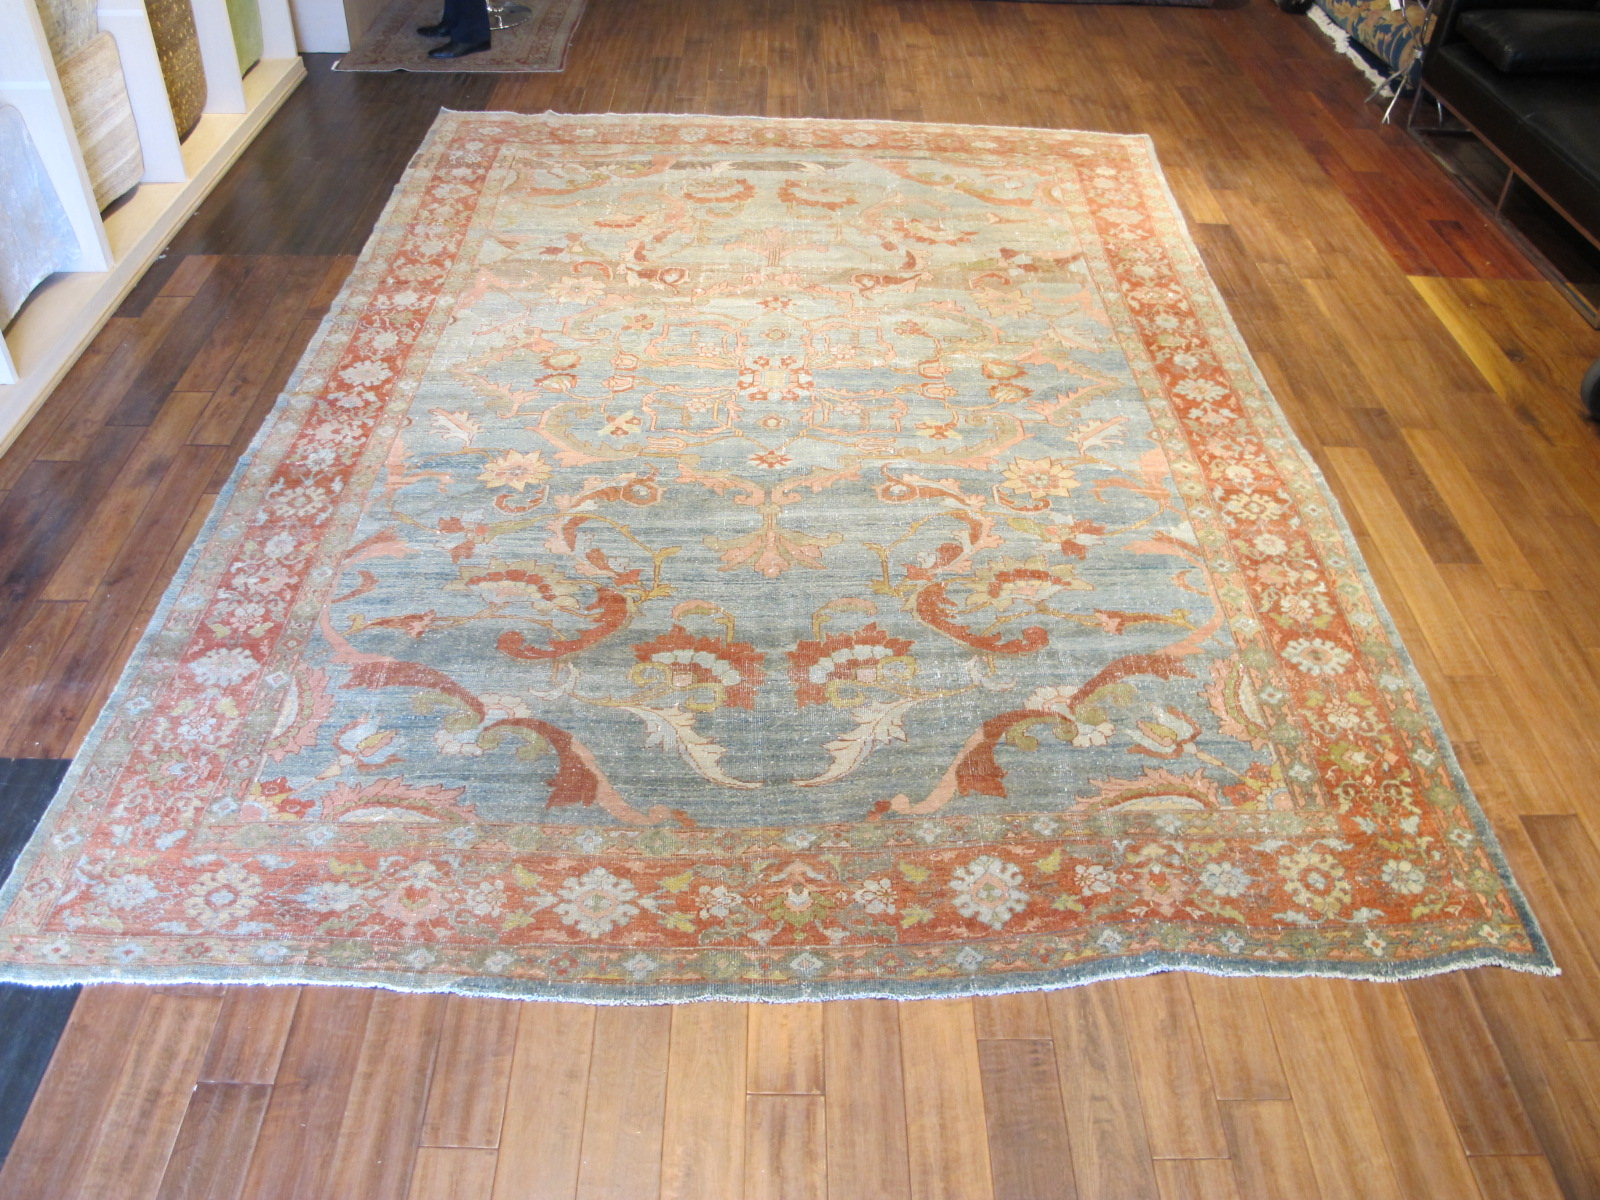 12998-antique-persian-sultanabad-rug-94-x-133-1